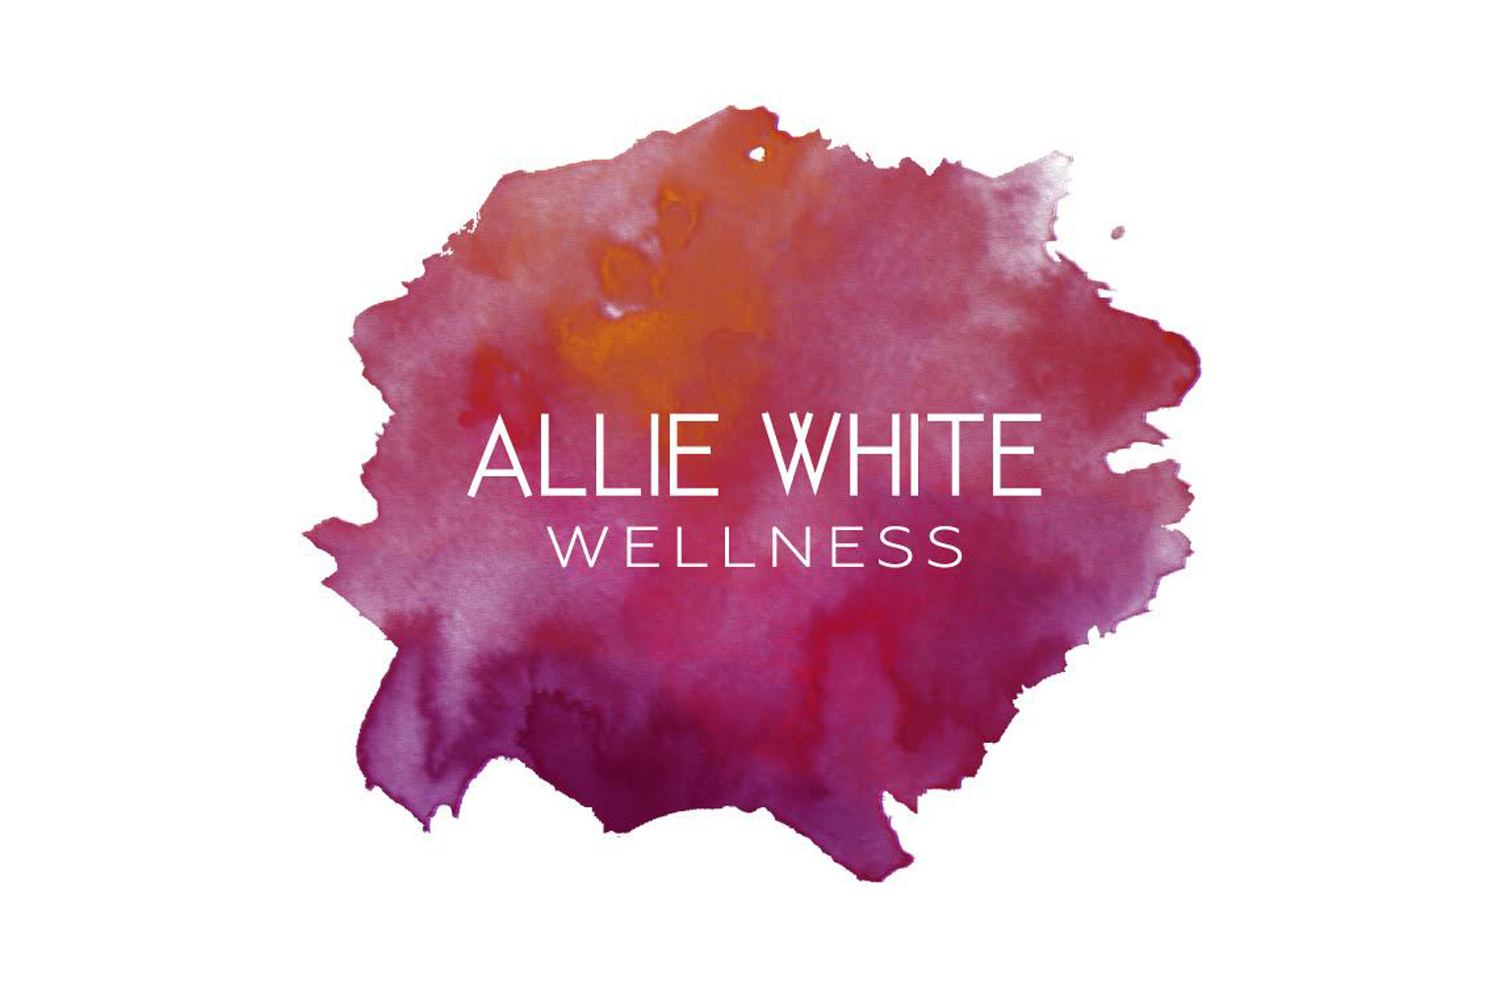 Allie White Wellness